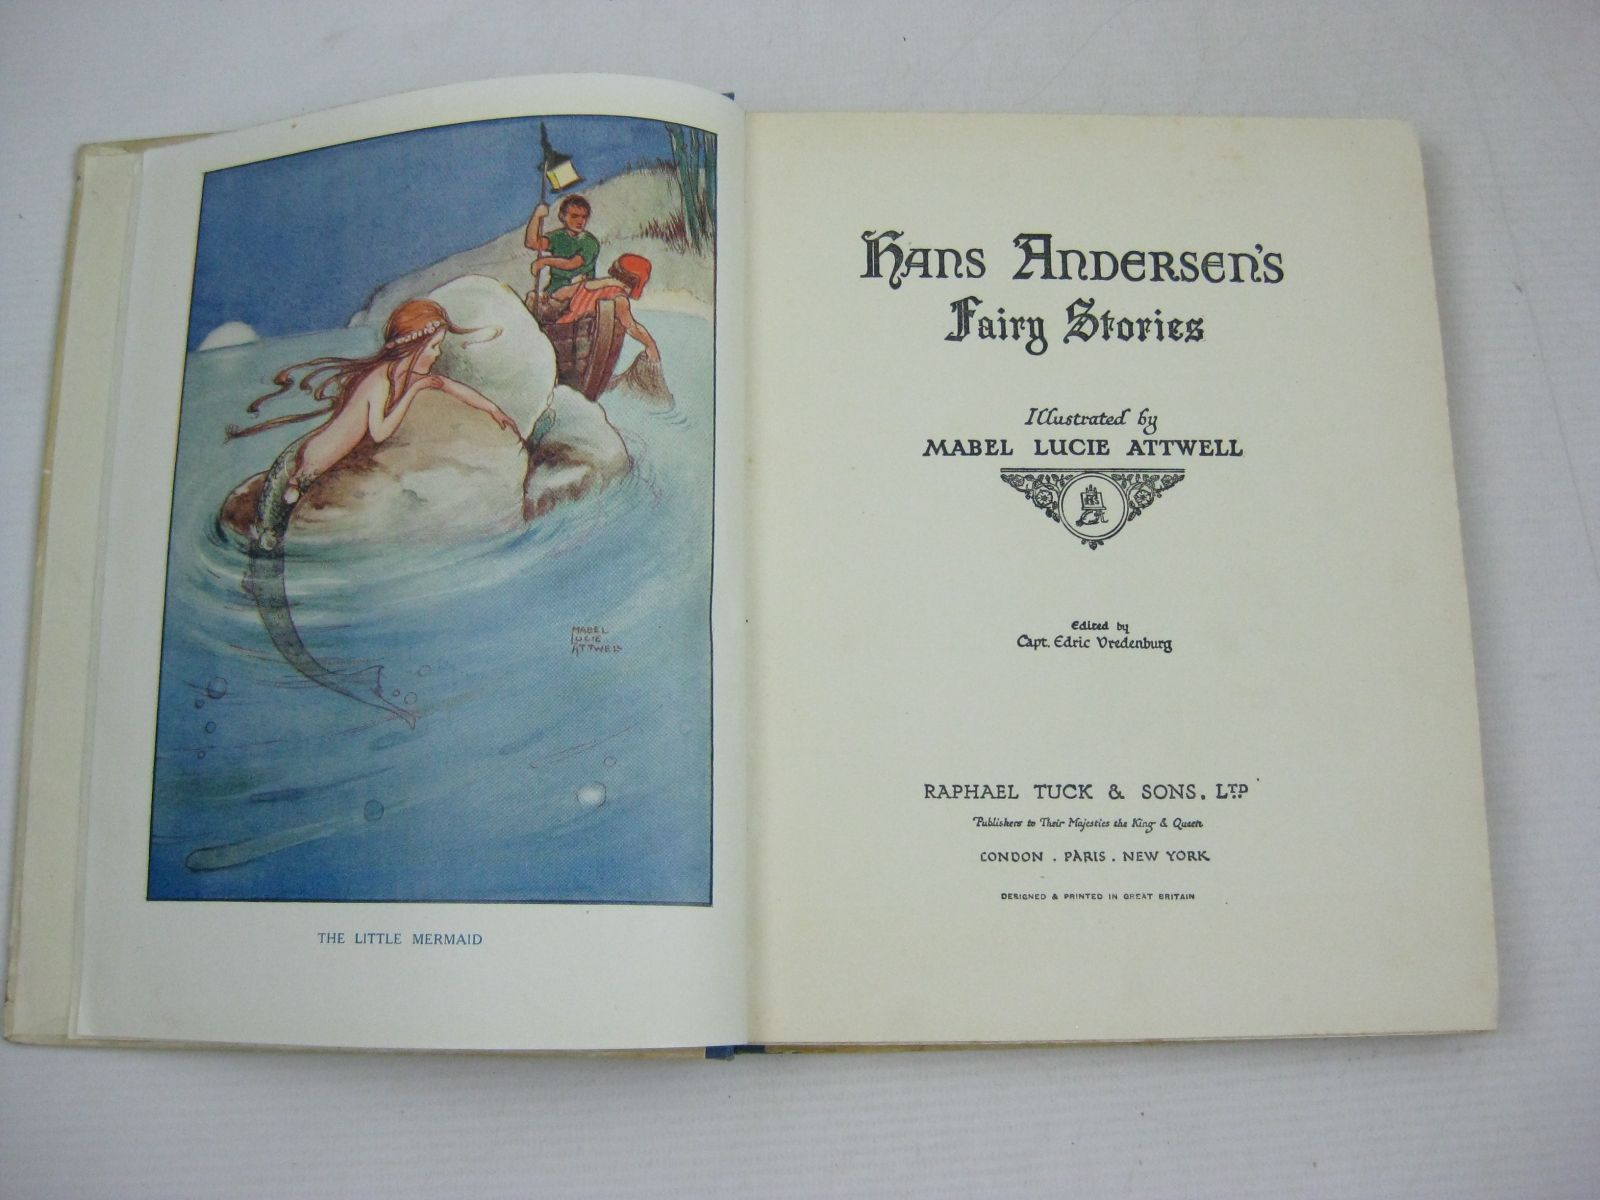 Photo of HANS ANDERSEN'S FAIRY STORIES written by Andersen, Hans Christian illustrated by Attwell, Mabel Lucie published by Raphael Tuck & Sons Ltd. (STOCK CODE: 1315698)  for sale by Stella & Rose's Books